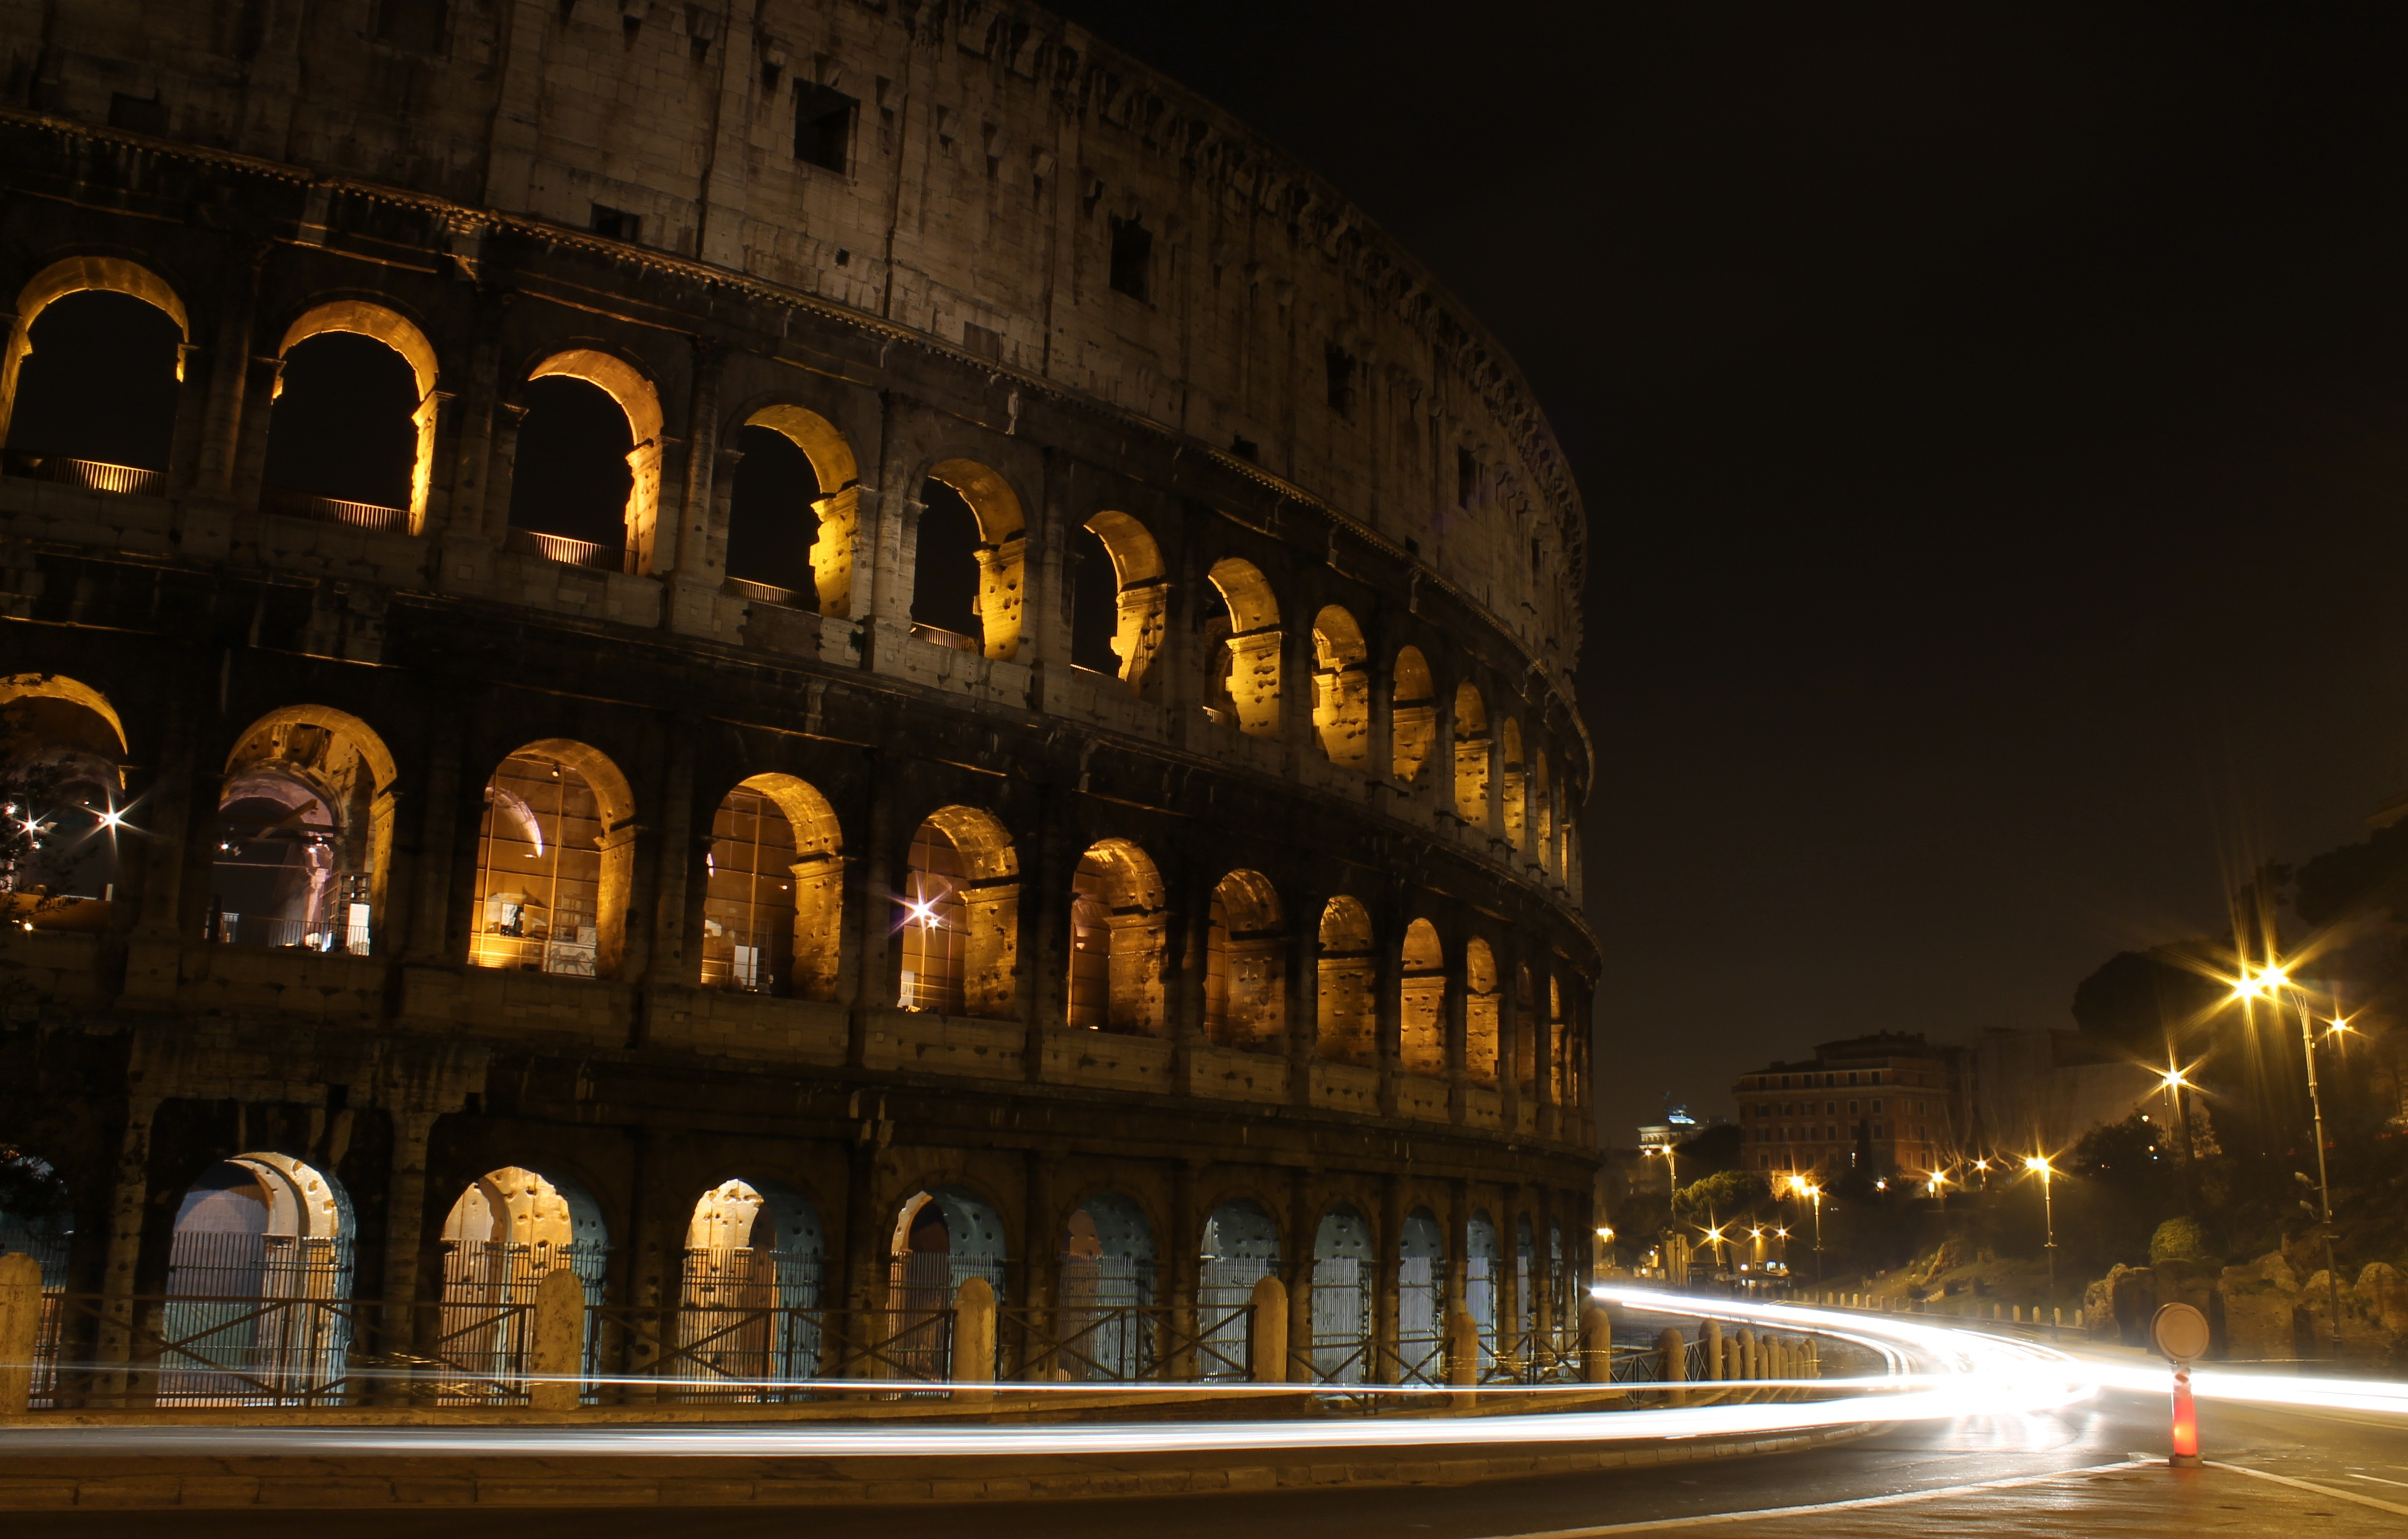 Wonderful Wallpaper Night Colosseum - Colosseum_at_night_with_motion_lights  HD.JPG